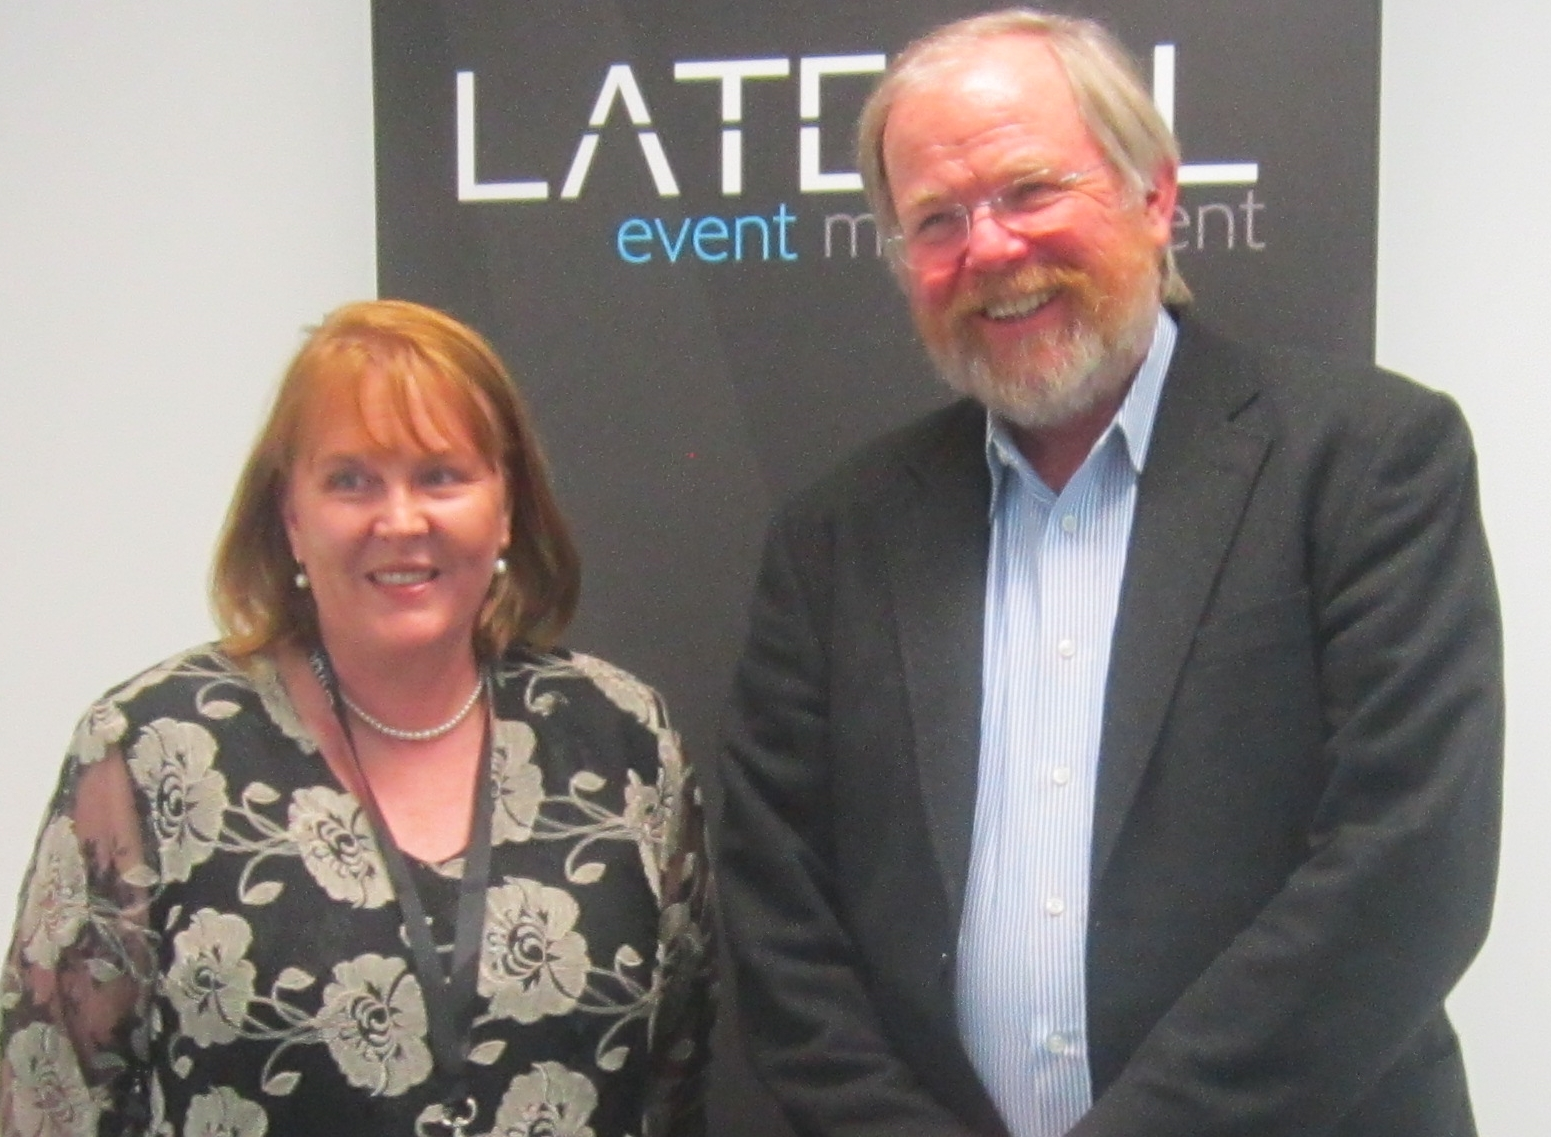 With Bill Bryson at his Canberra event, March 2014